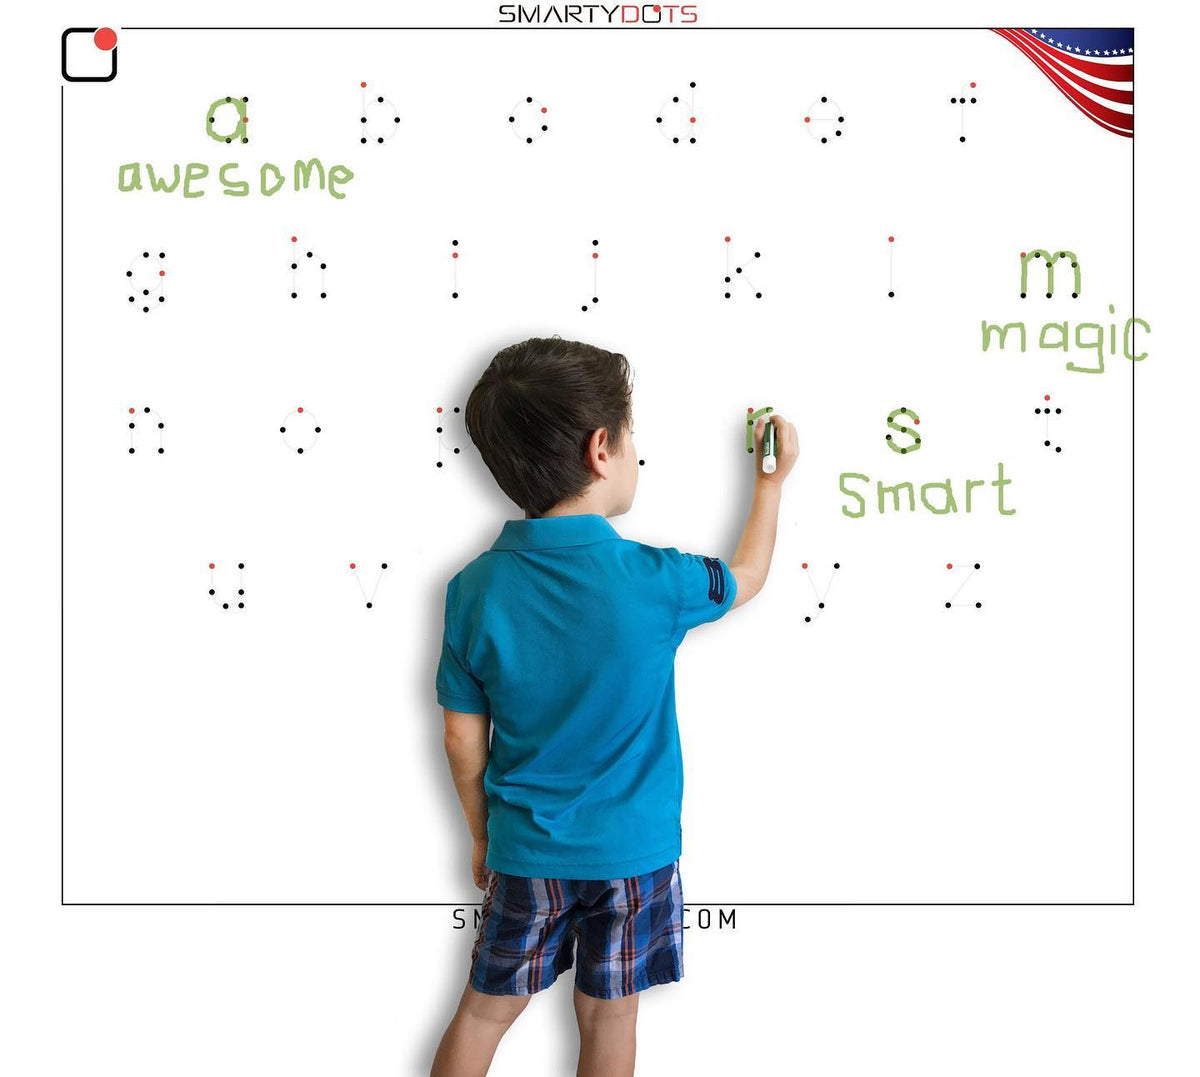 From Shapes Through Upper Case Letters: Smarty Dots for Smart Kids